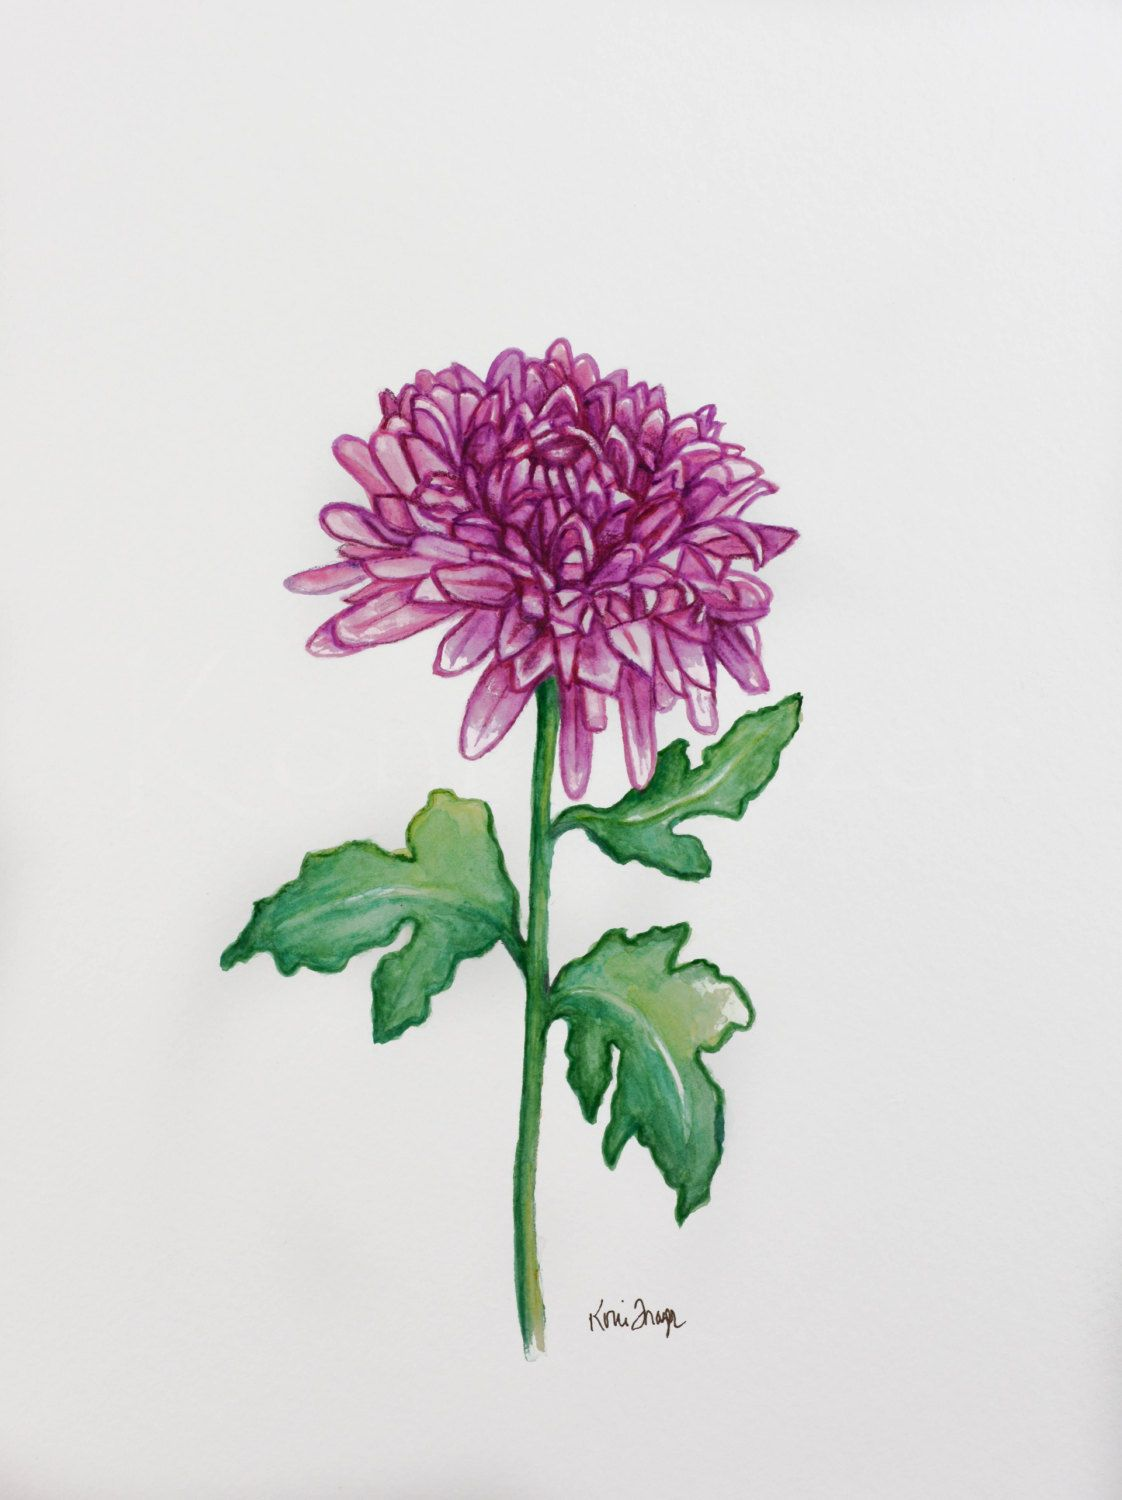 Chrysanthemum, November birthday flower, original